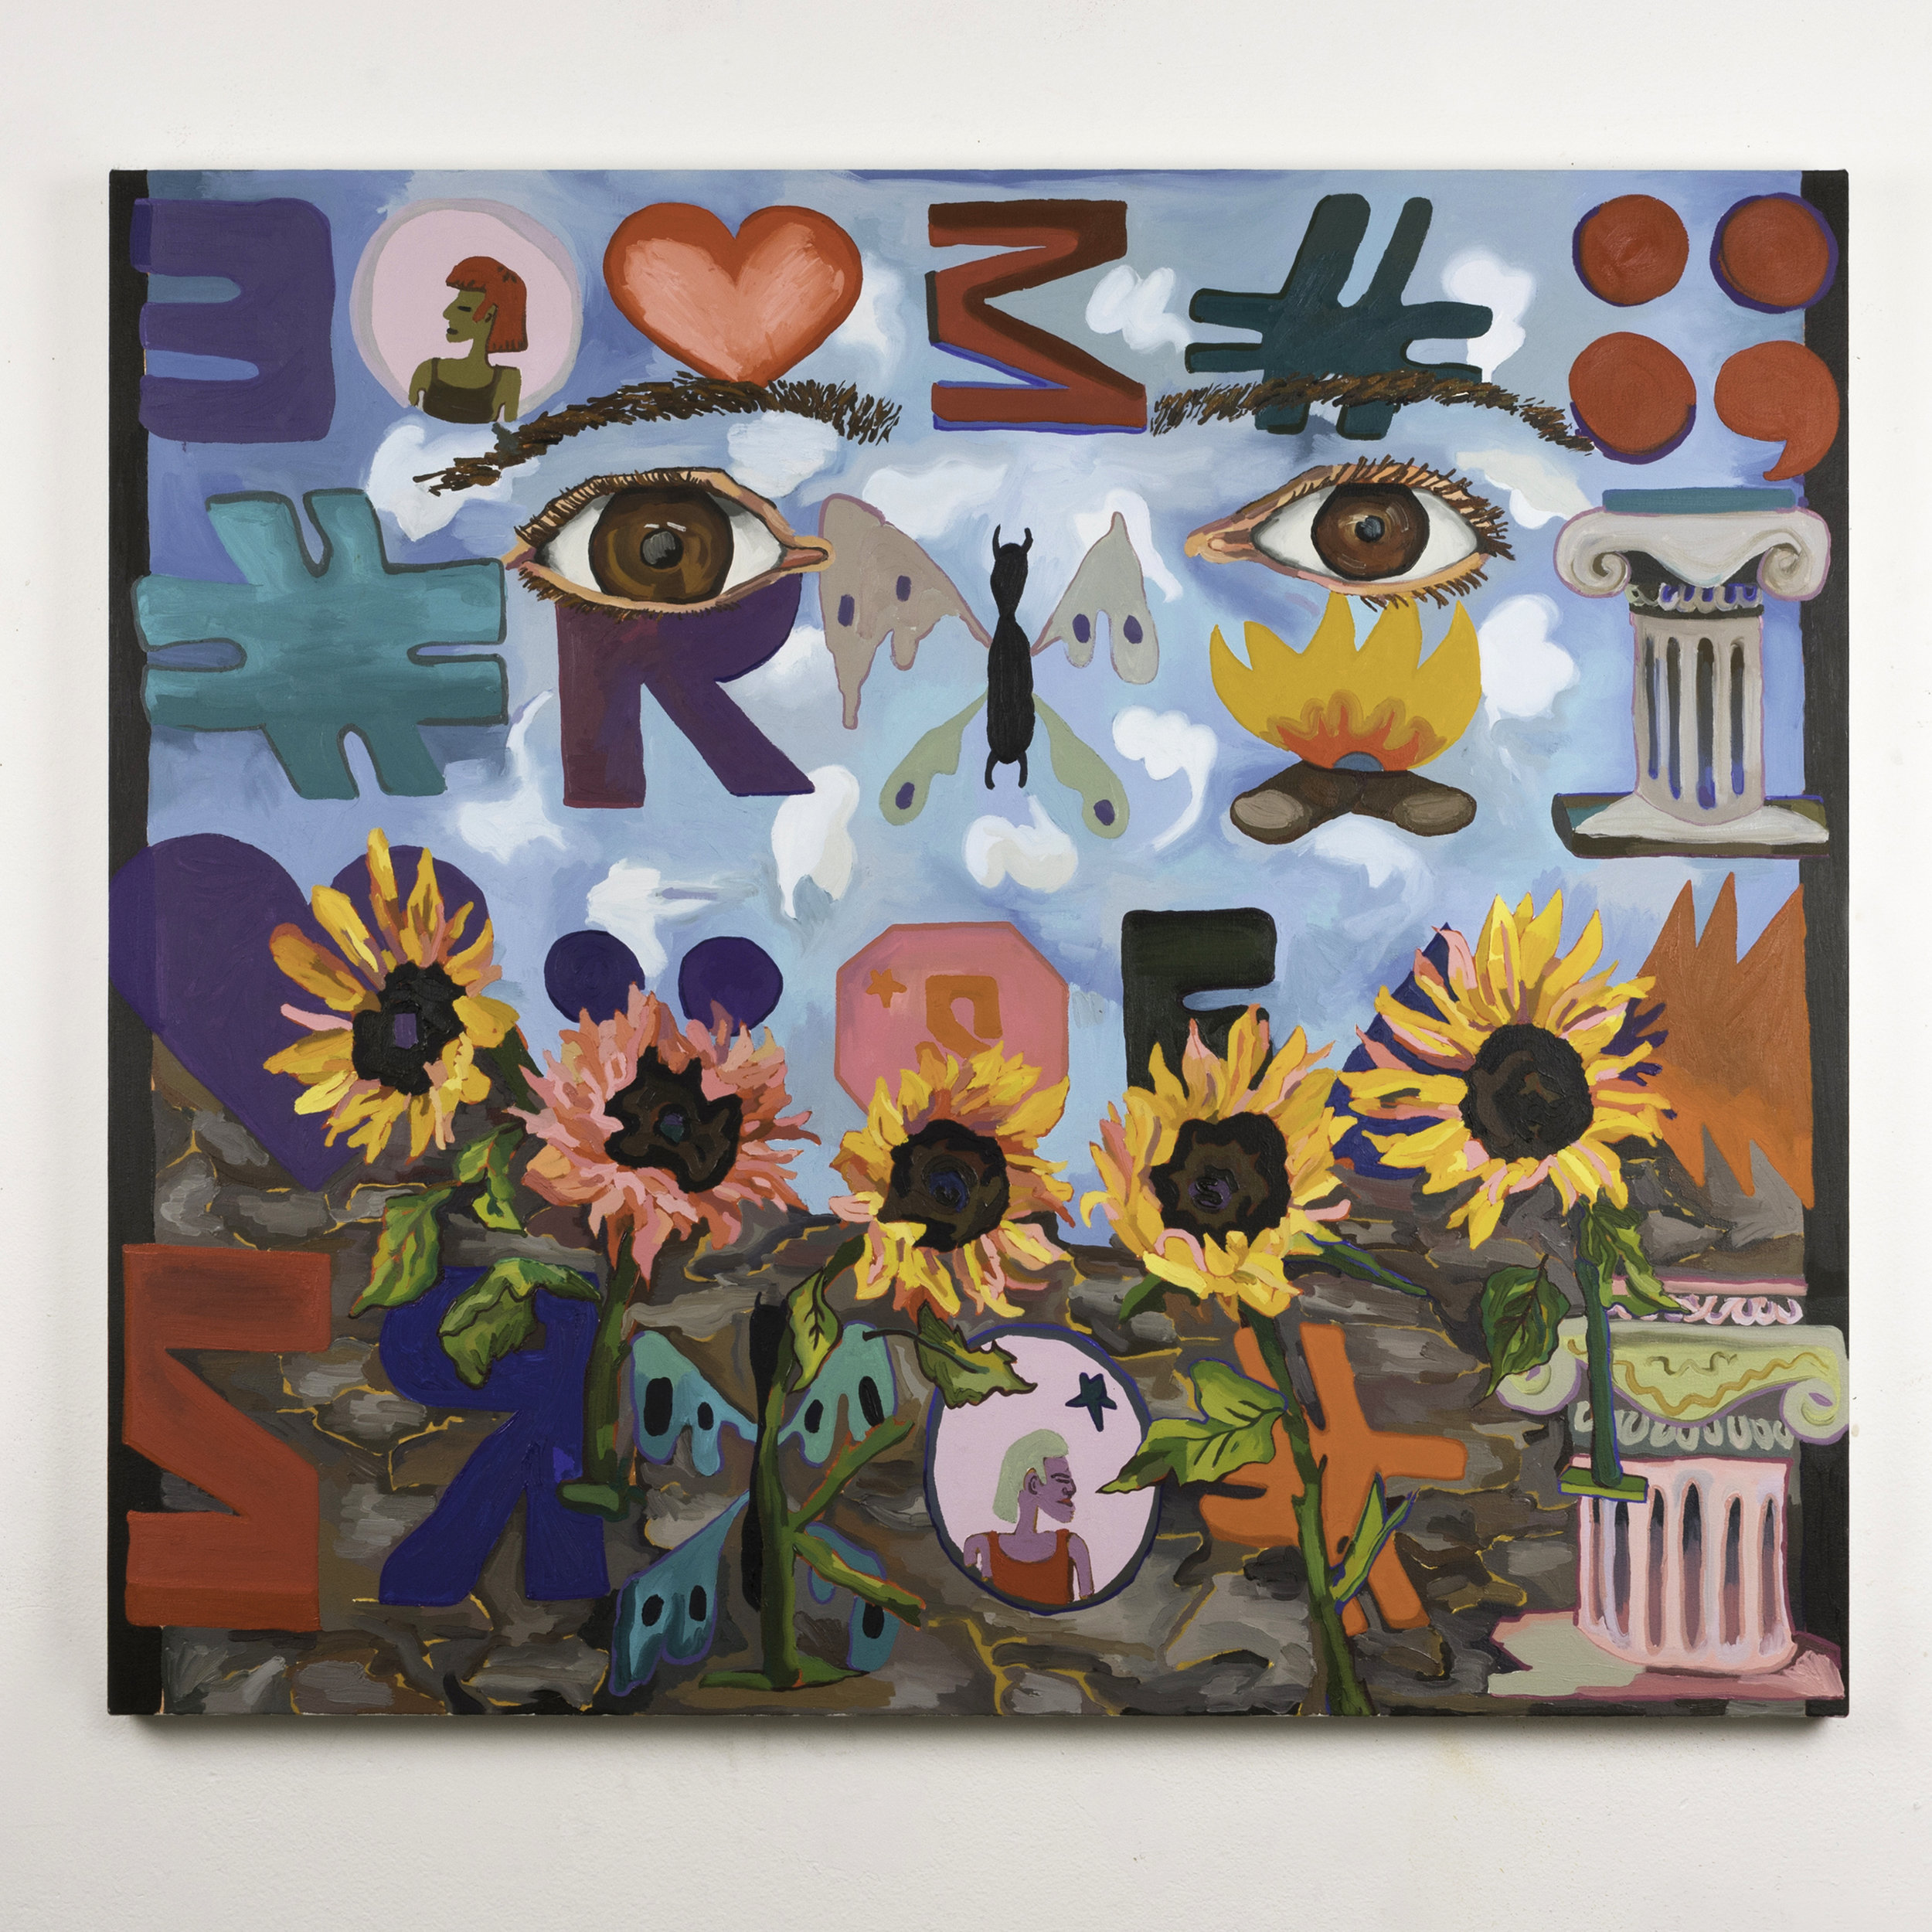 Alex Chaves,  Emoticon, Sunflowers, Eyes , 2018, Oil on canvas, 41 × 46 ½ in.